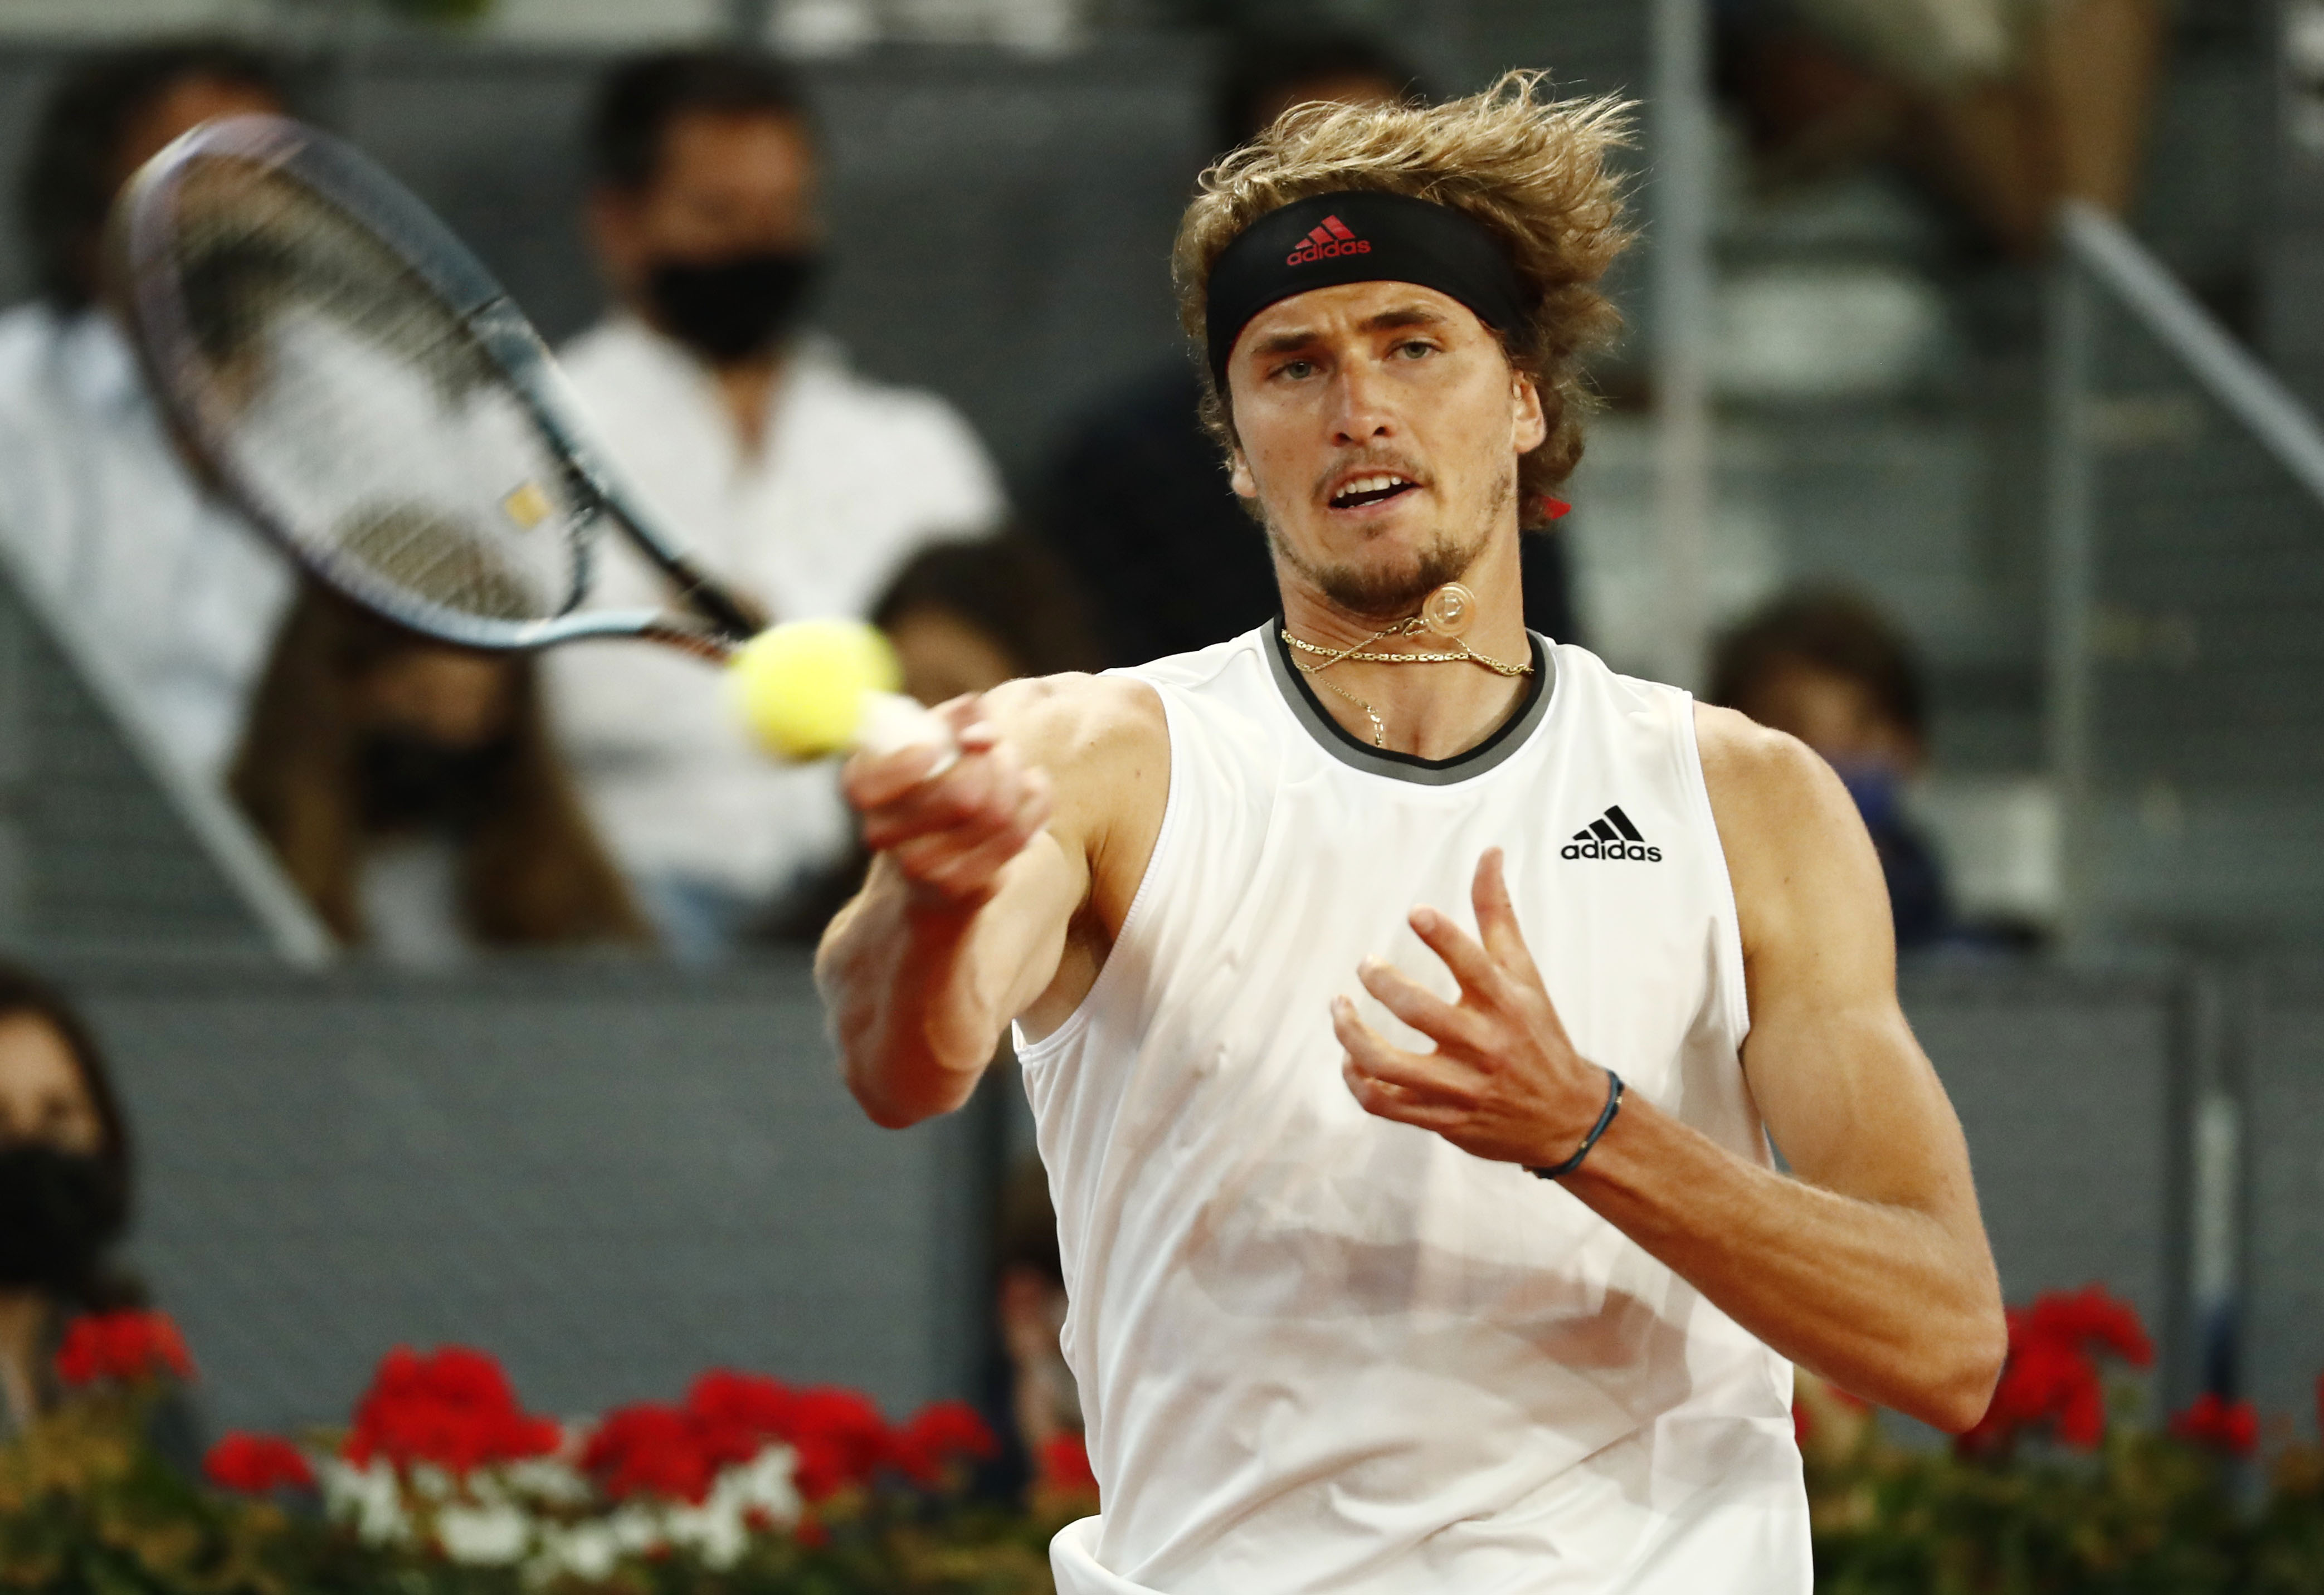 Tennis - ATP Masters 1000 - Madrid Open - Caja Magica, Madrid, Spain - May 9, 2021 Germany's Alexander Zverev in action during his final match against Italy's Matteo Berrettini REUTERS/Sergio Perez